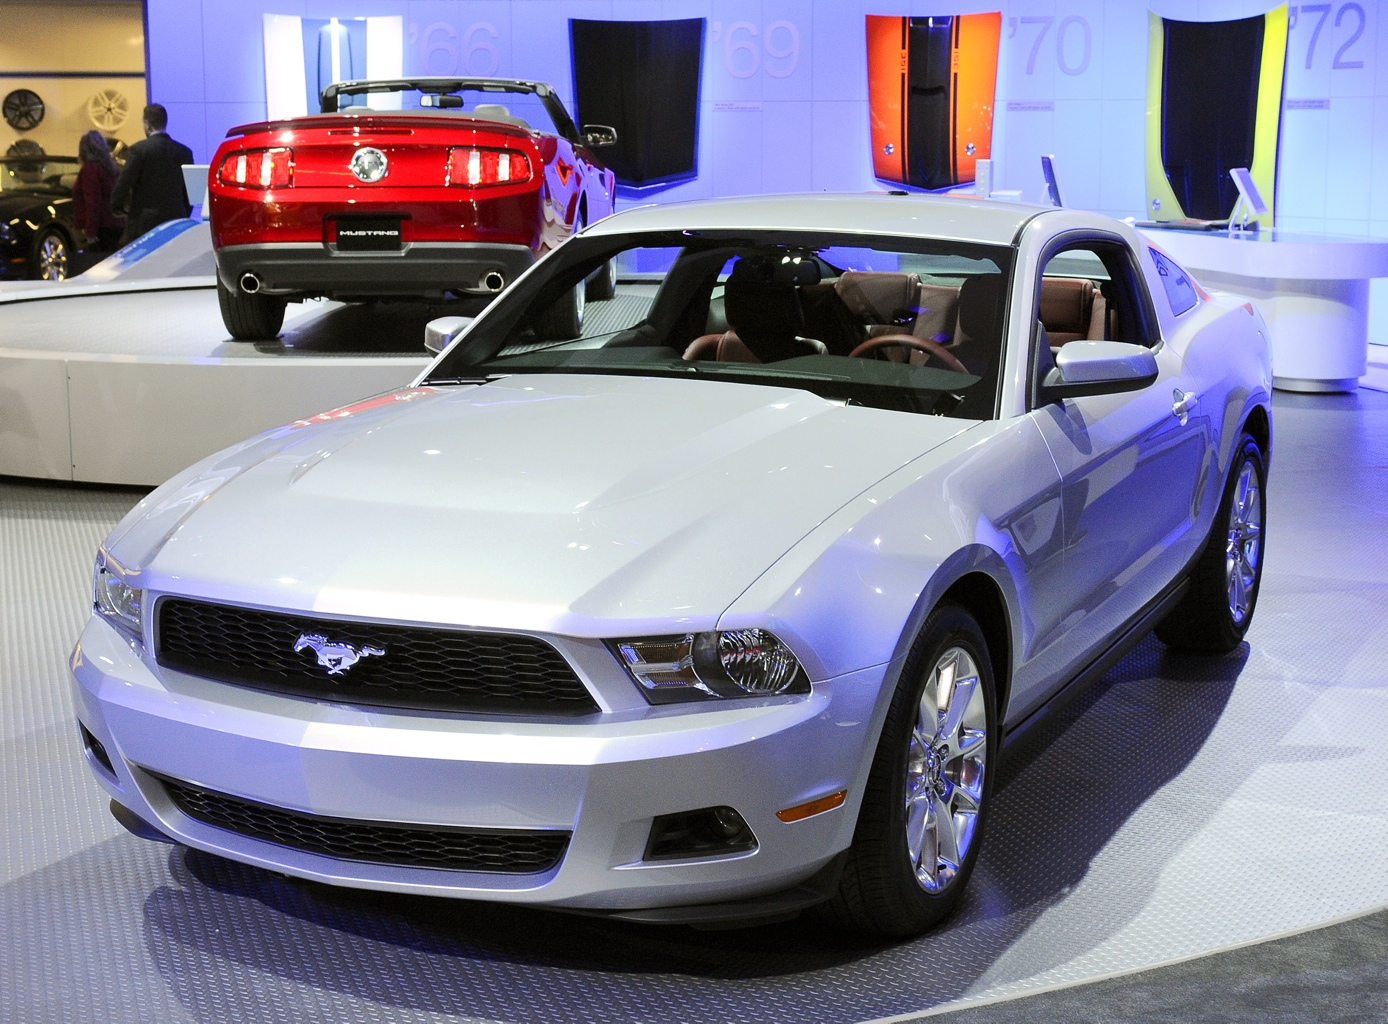 2010 Brilliant Silver Mustang V6 Coupe